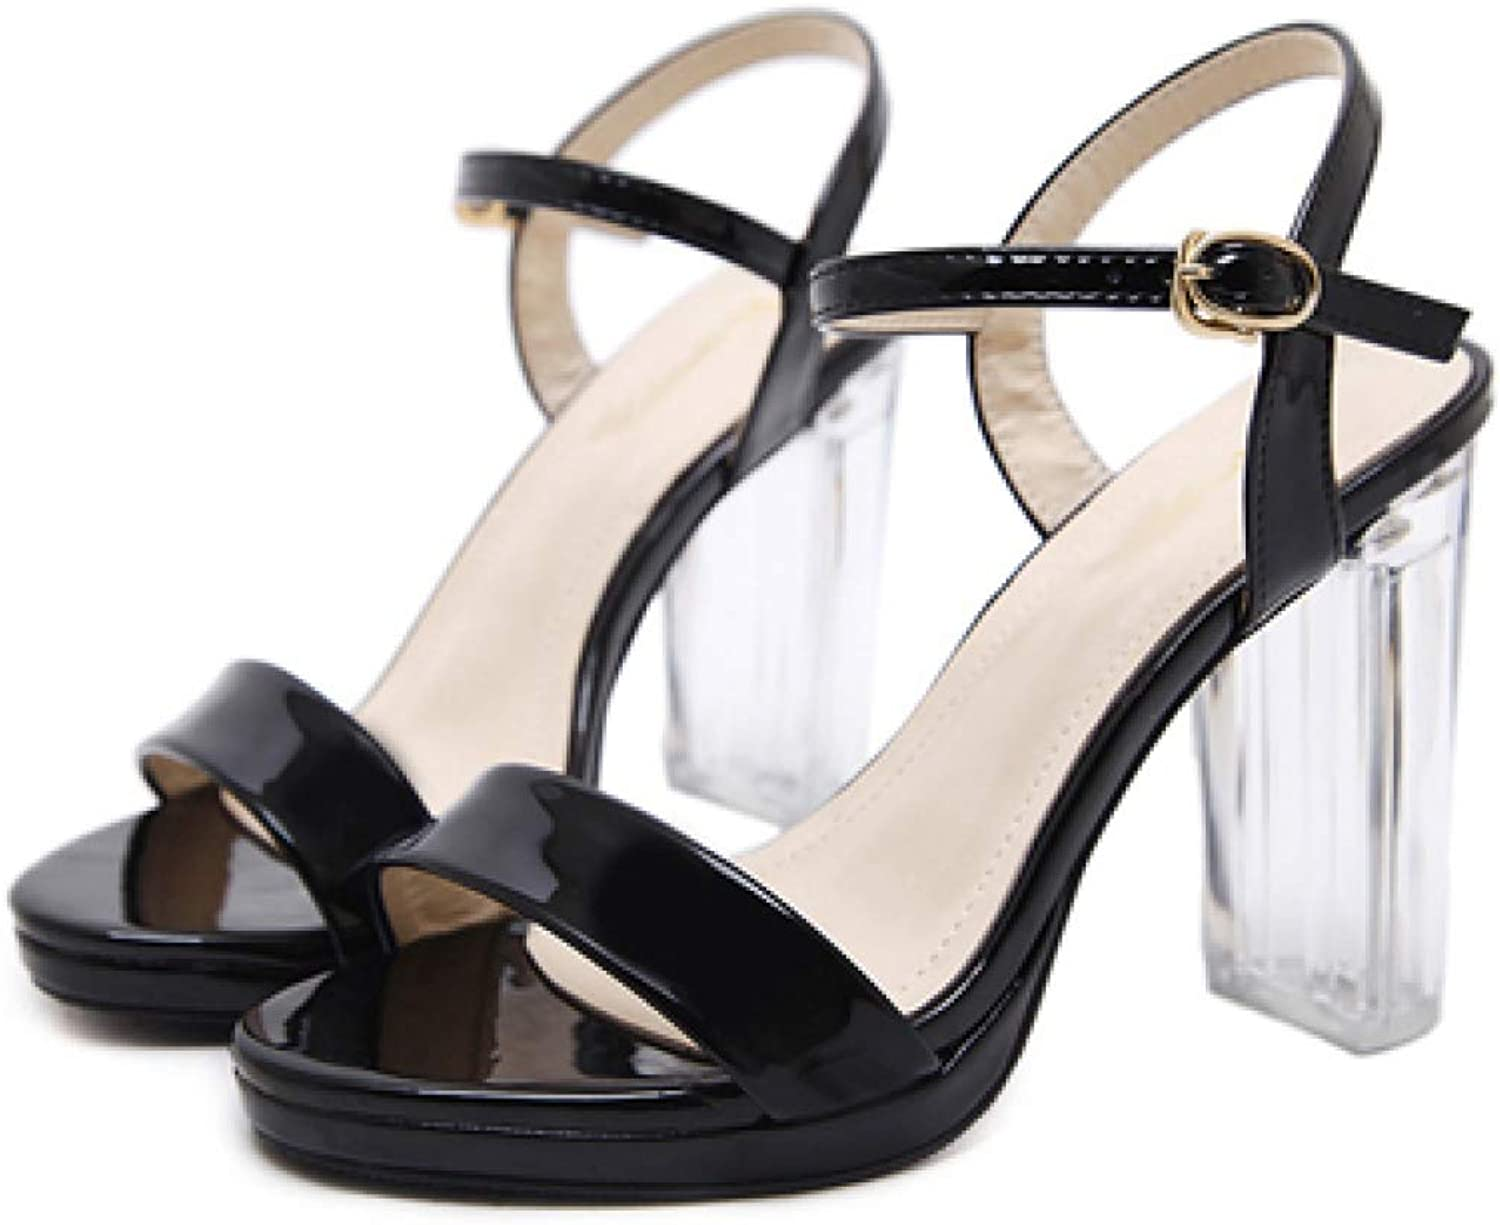 T-JULY Sandal for Women Open Toe Transparent Heel Sexy Ankle Strap Summer Fashion Breathable Ladies shoes